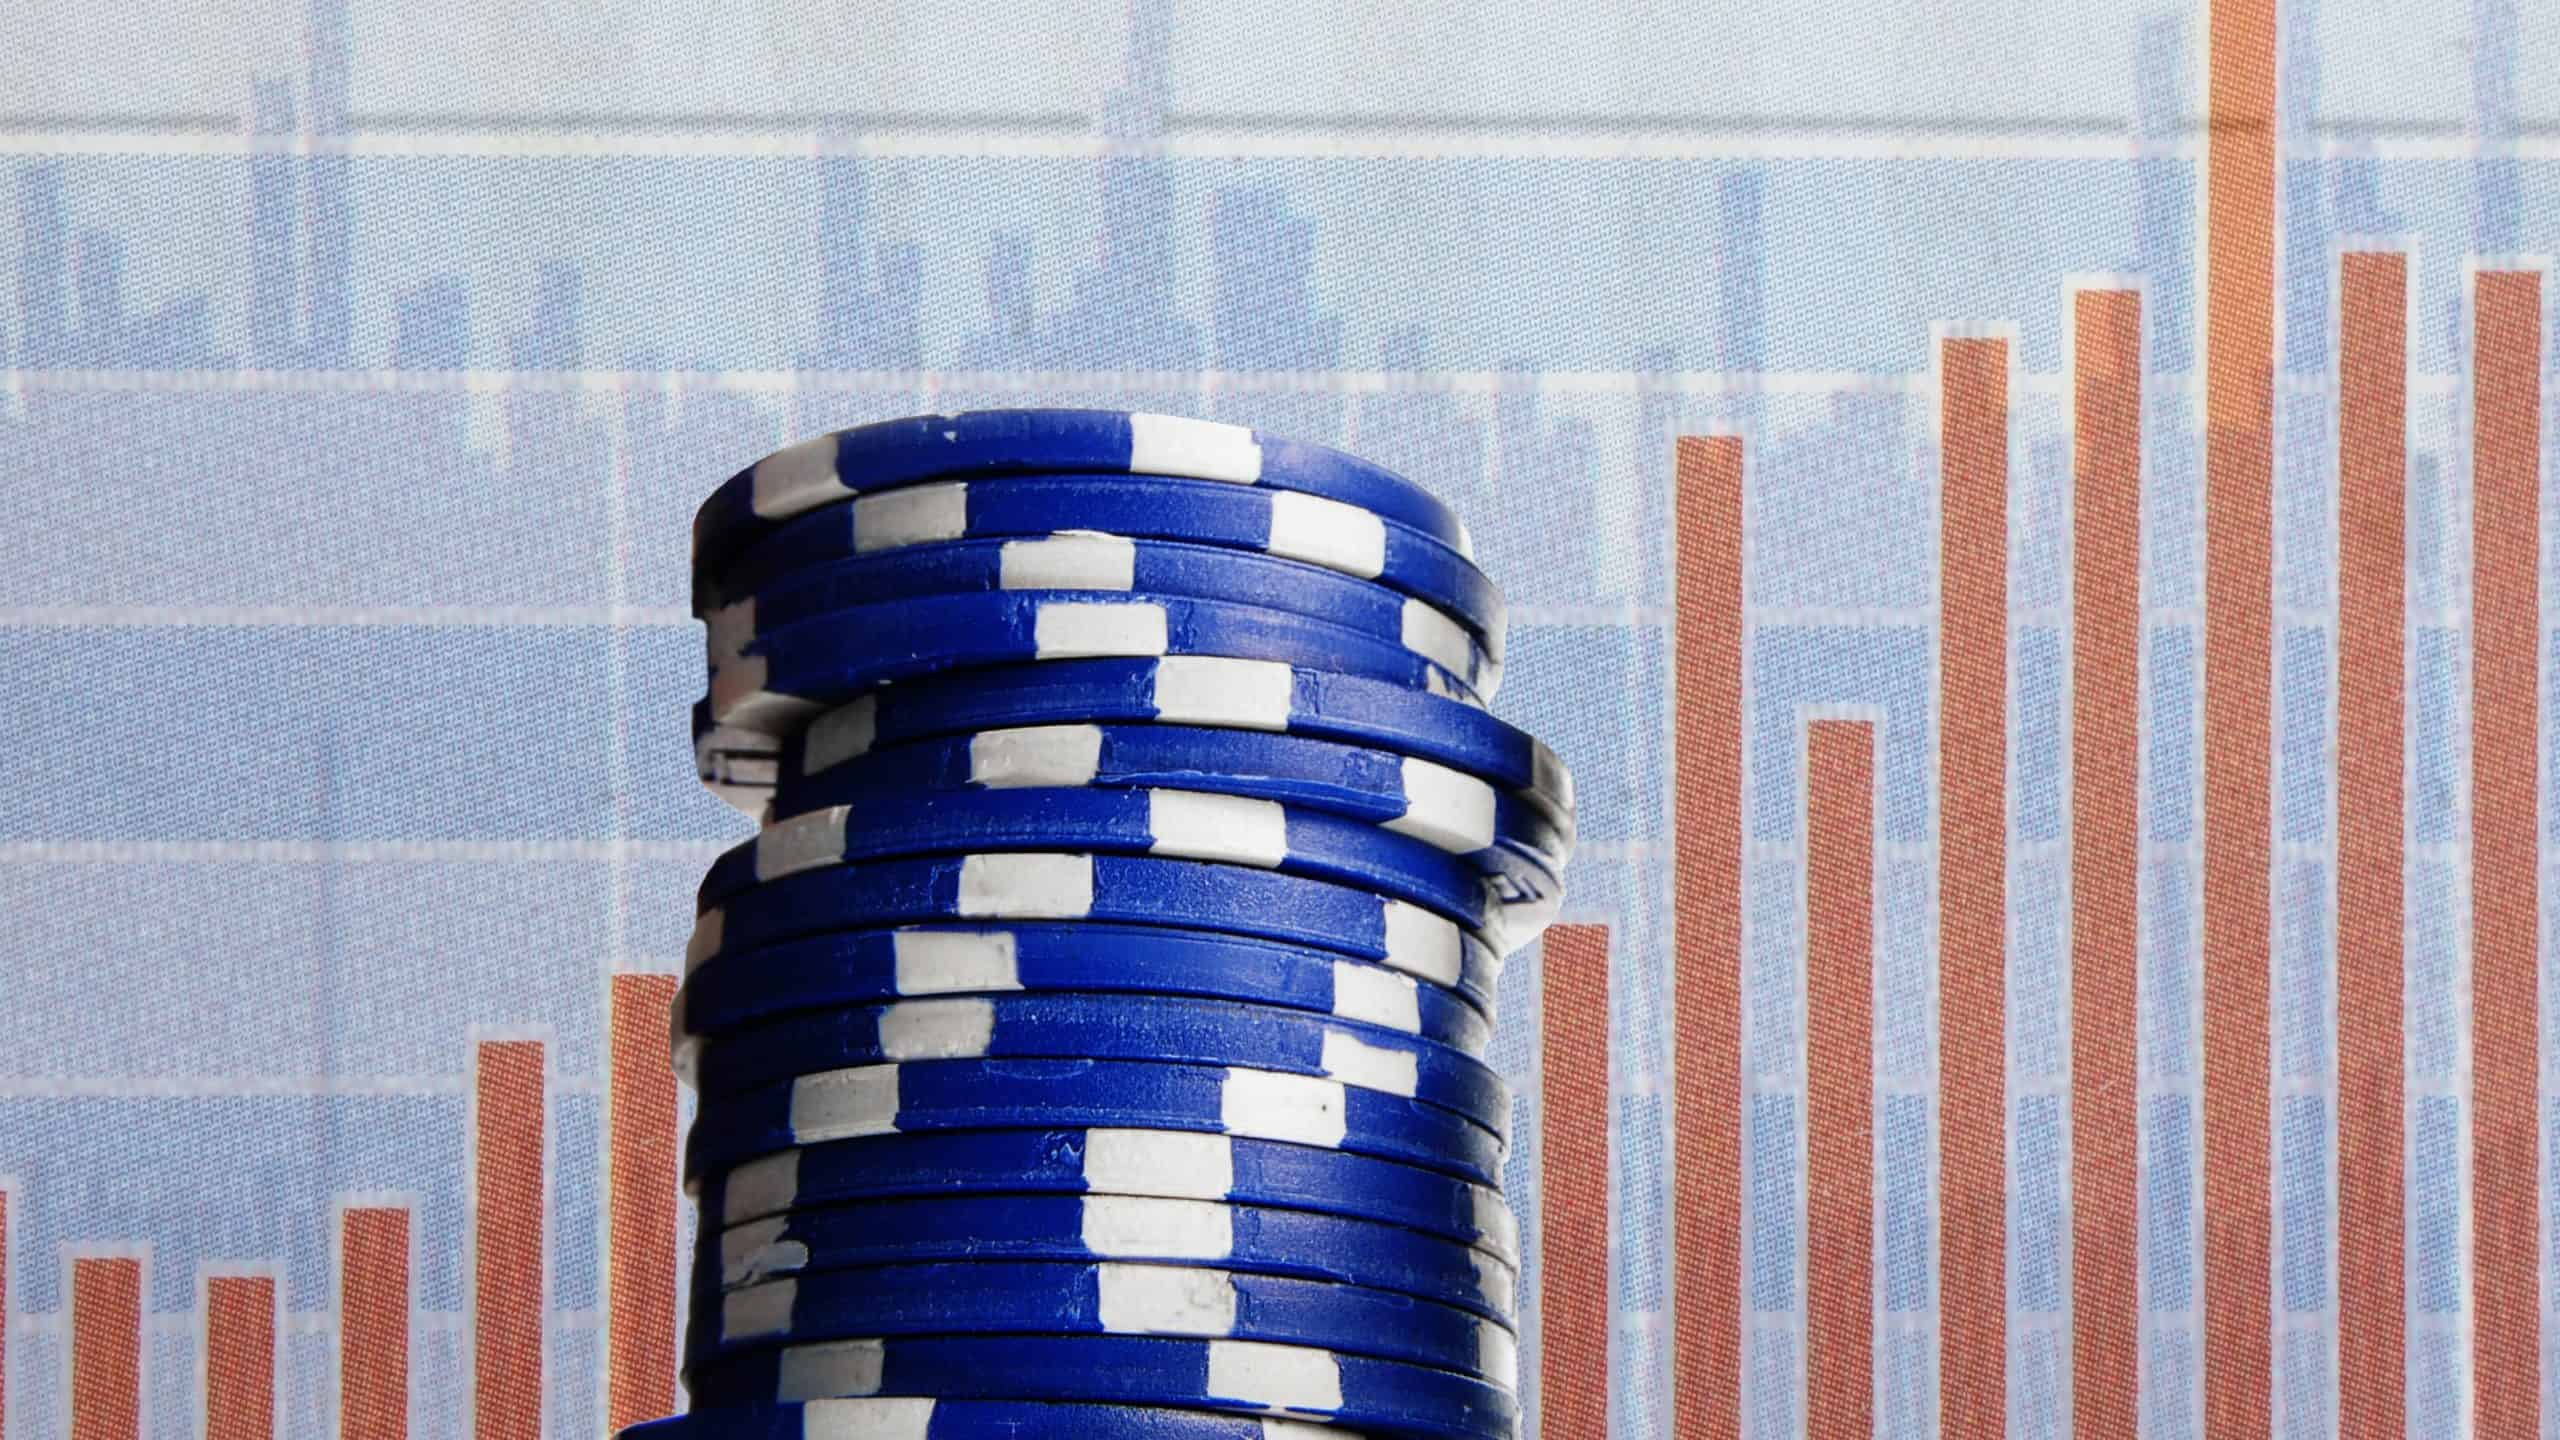 asx blue chip shares represented by pile of blue casino chips in front of bar graph